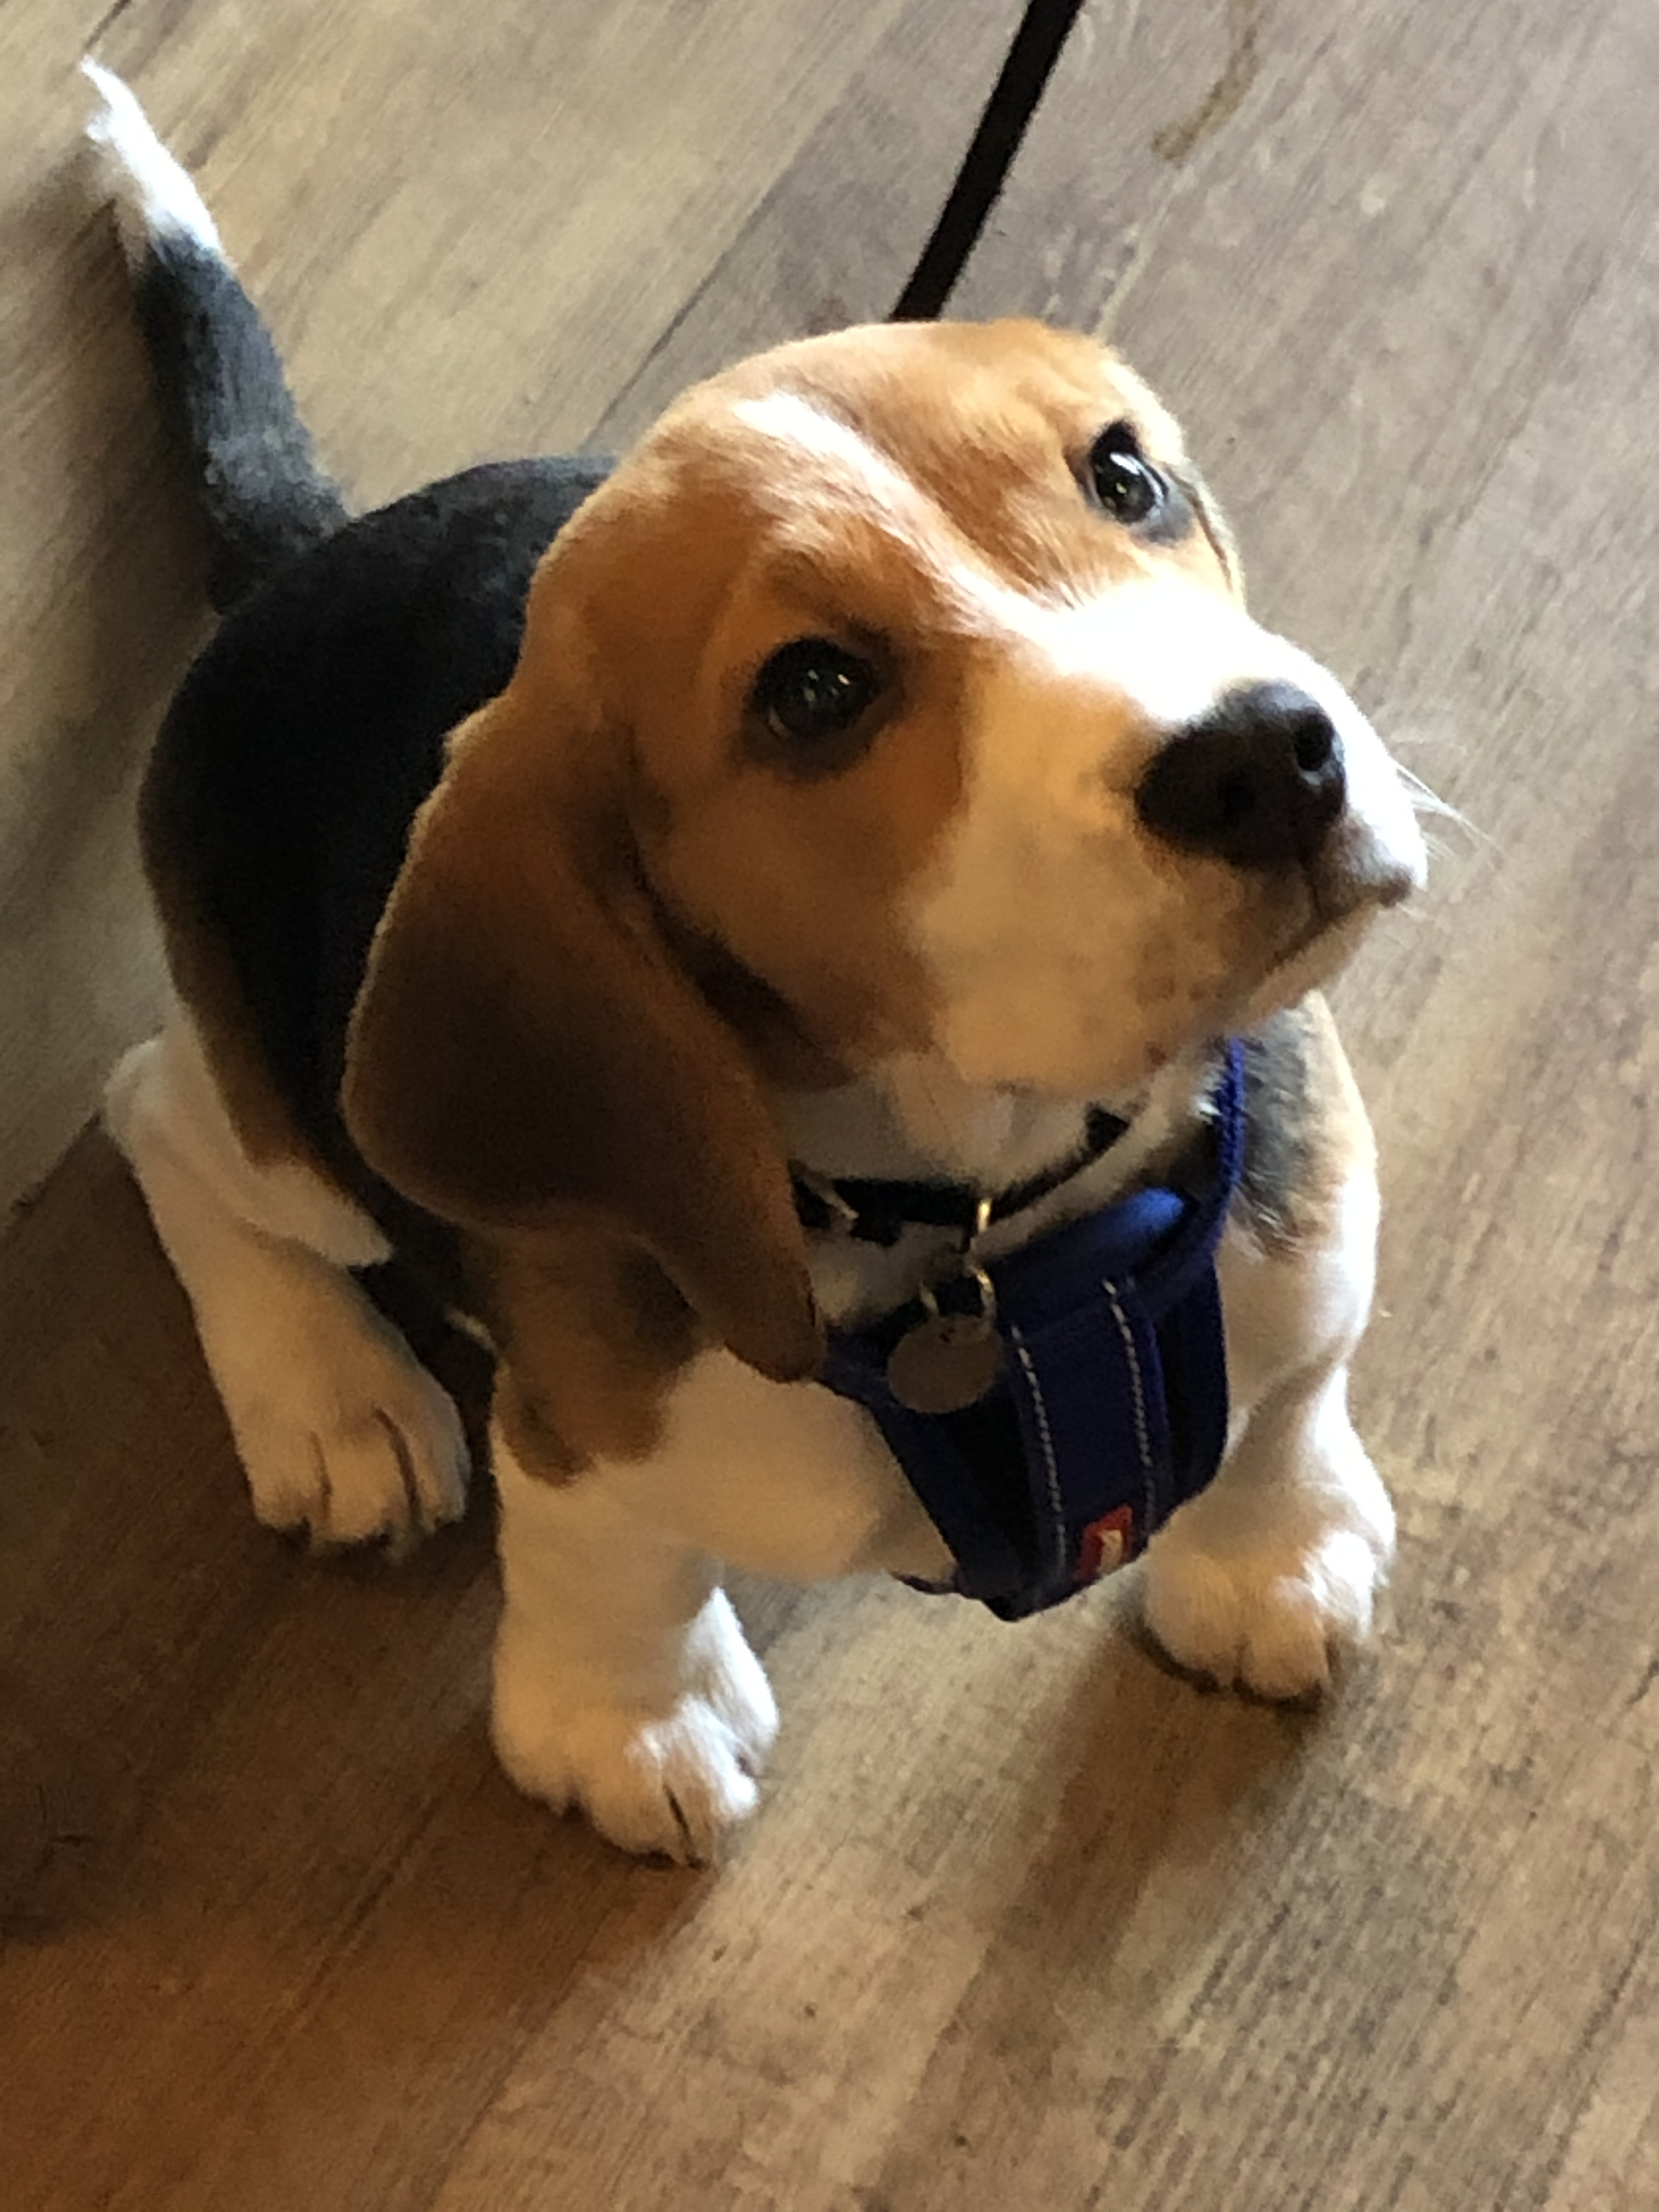 Charlie-the-puppy-beagle-waiting-for-his-liver-cake